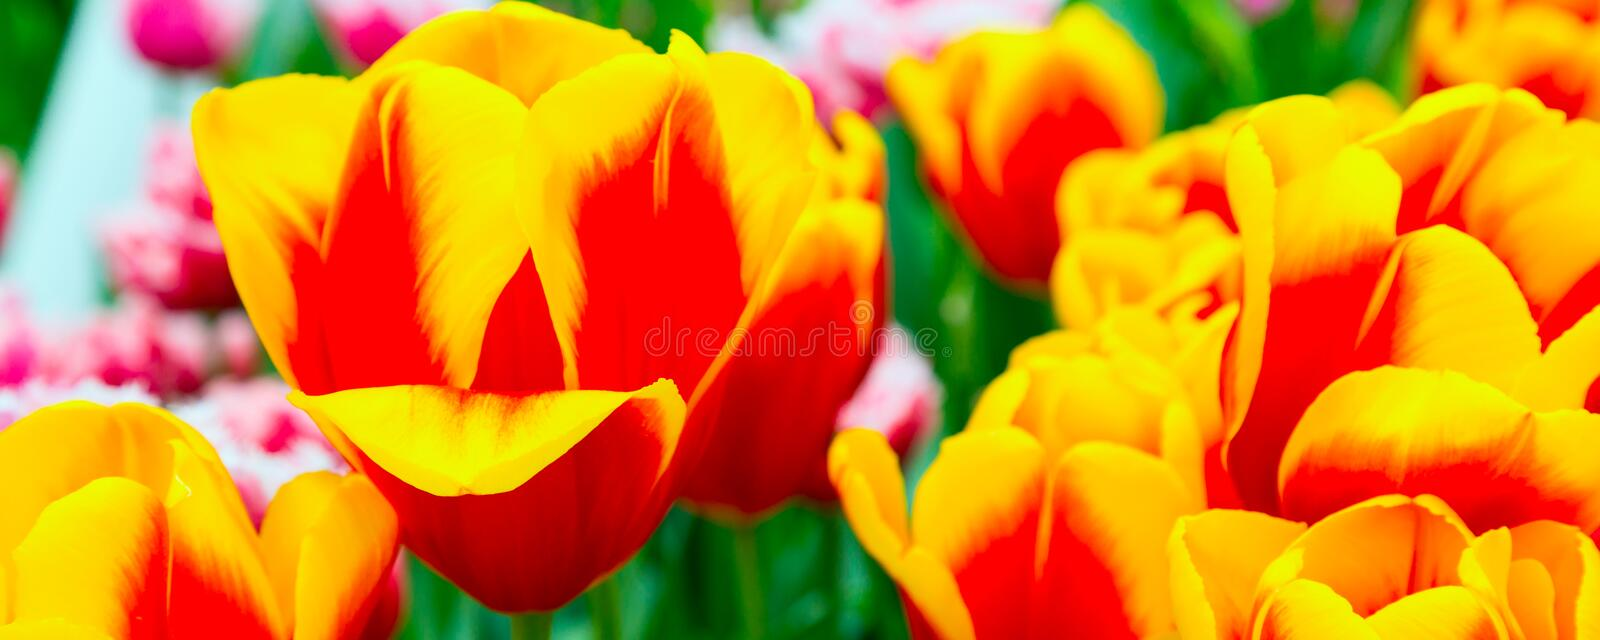 Red and yellow tulips flowerbed close-up. Panoramic holiday or birthday background with red and yellow tulips flowerbed close-up stock photography